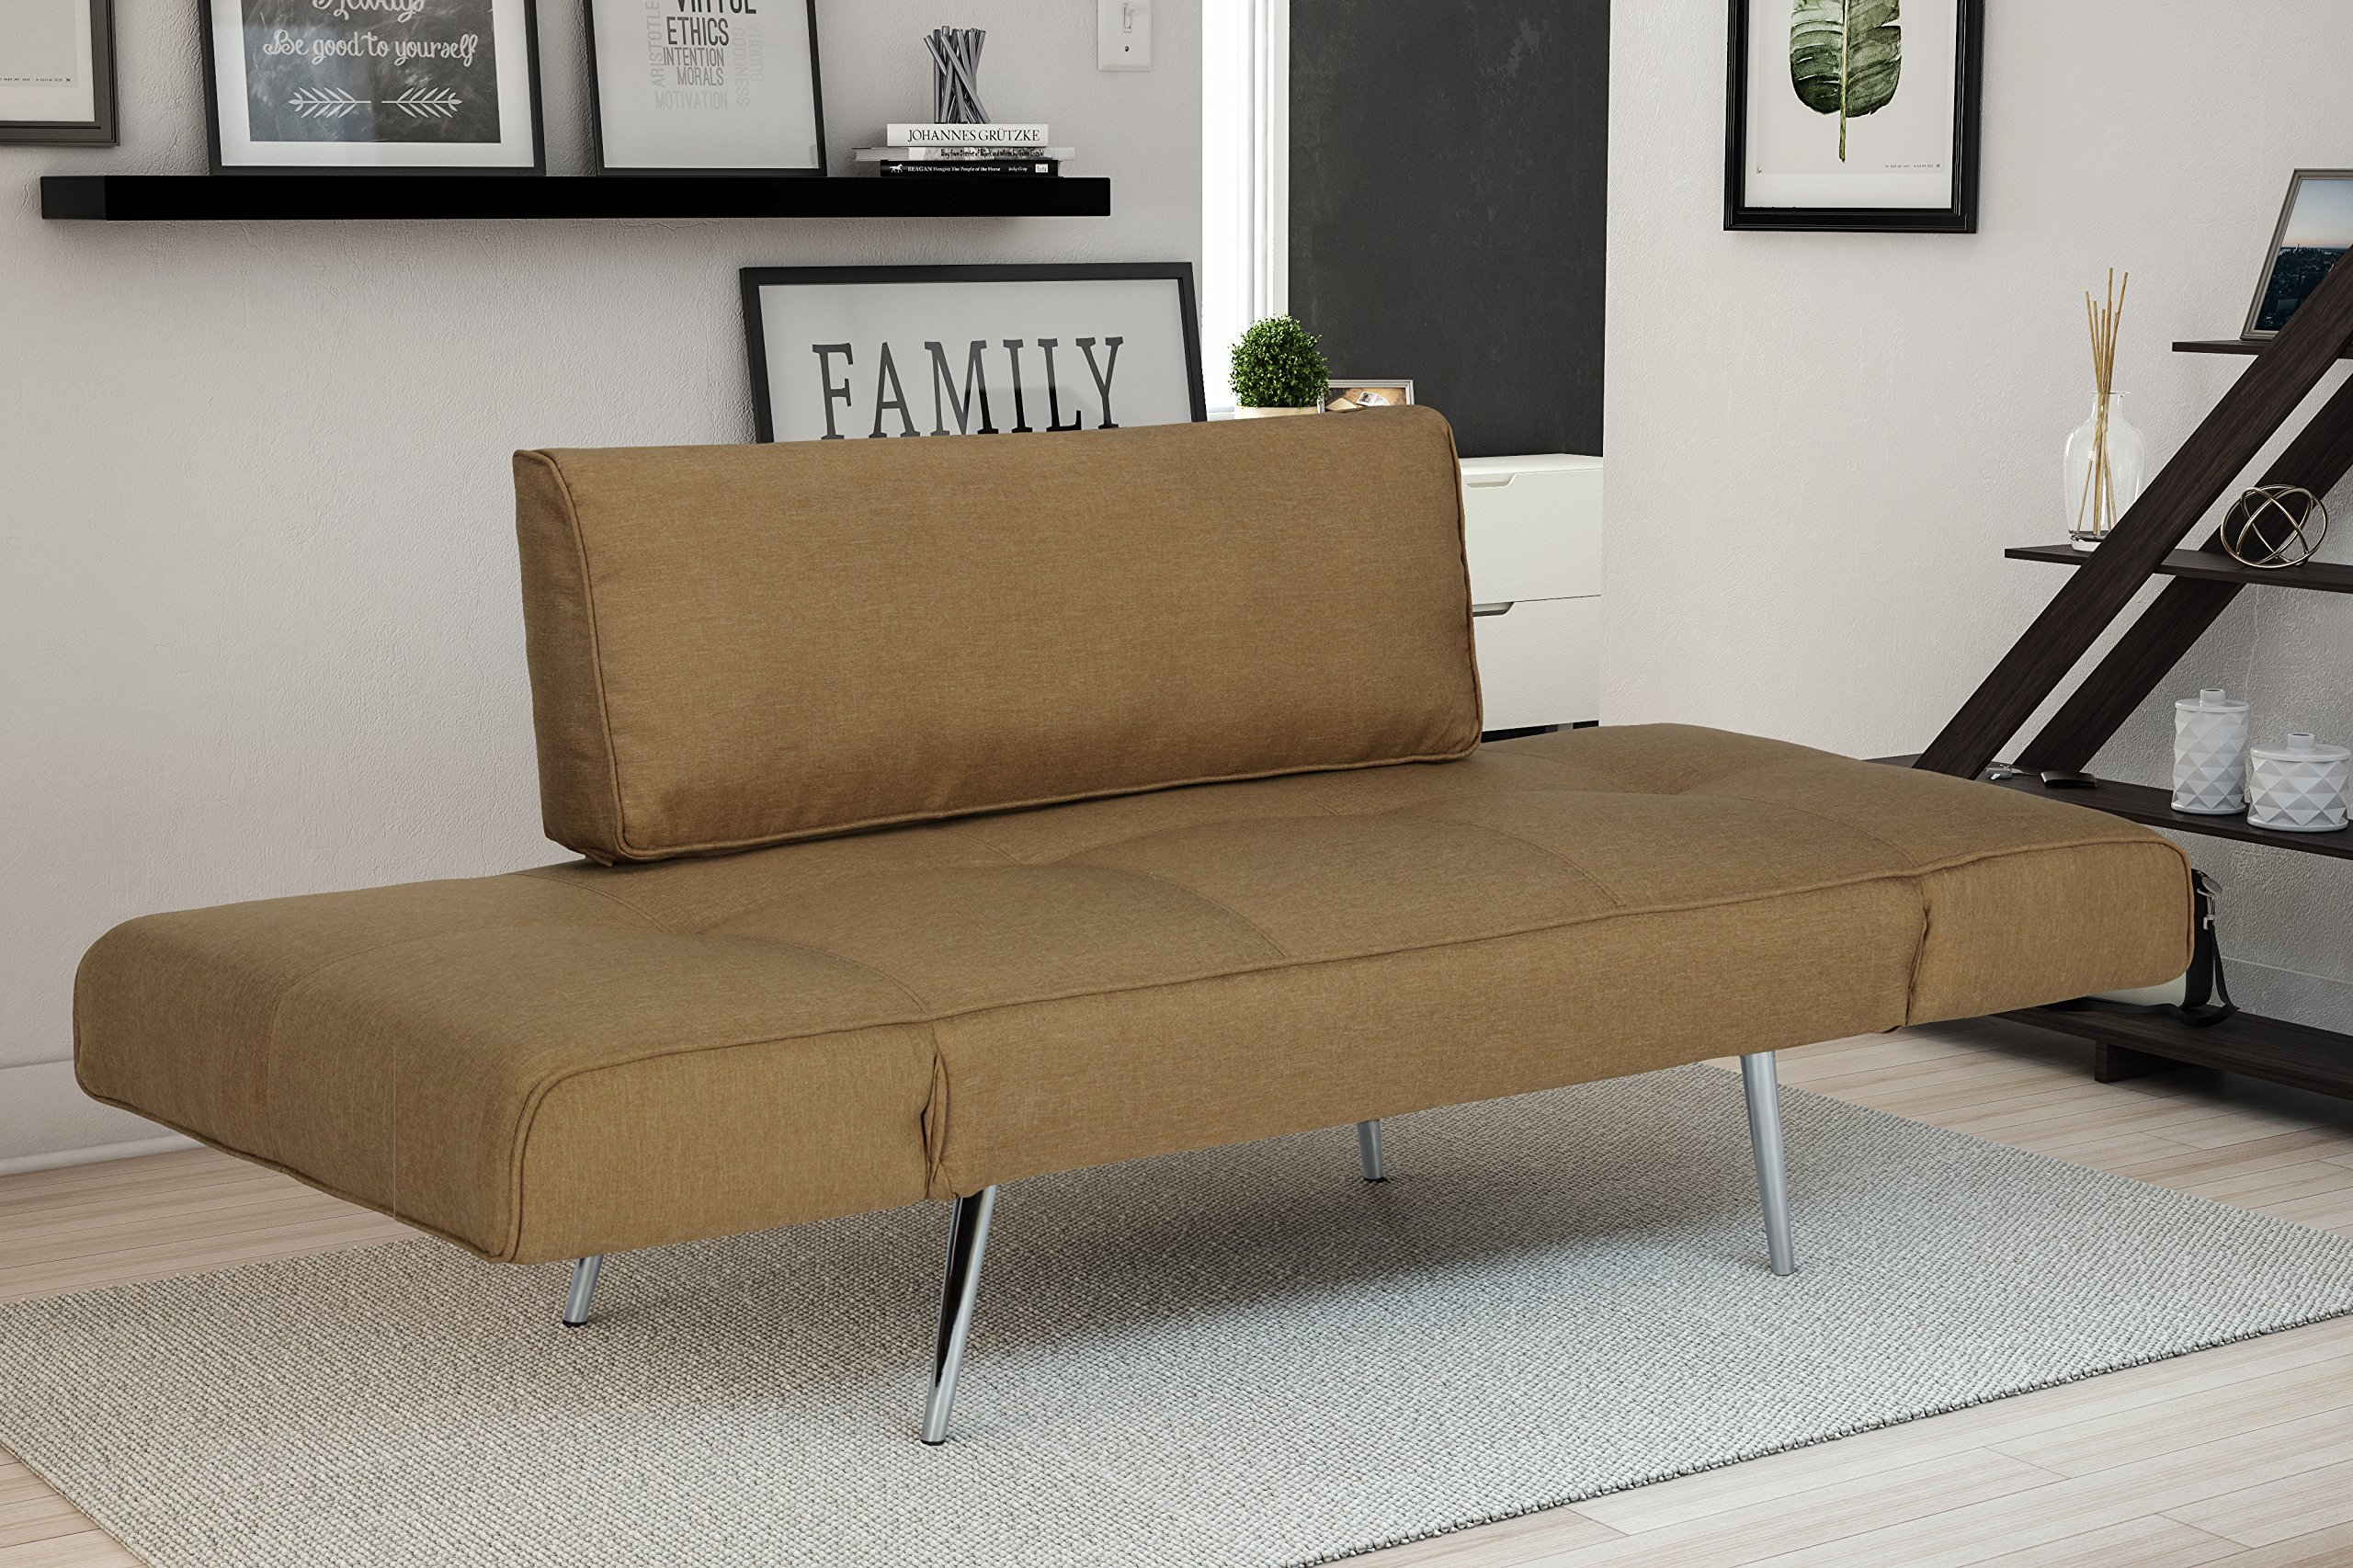 DHP Euro Sofa Futon Loveseat with Chrome Legs and Adjustable Armrests - Tan by DHP (Image #5)